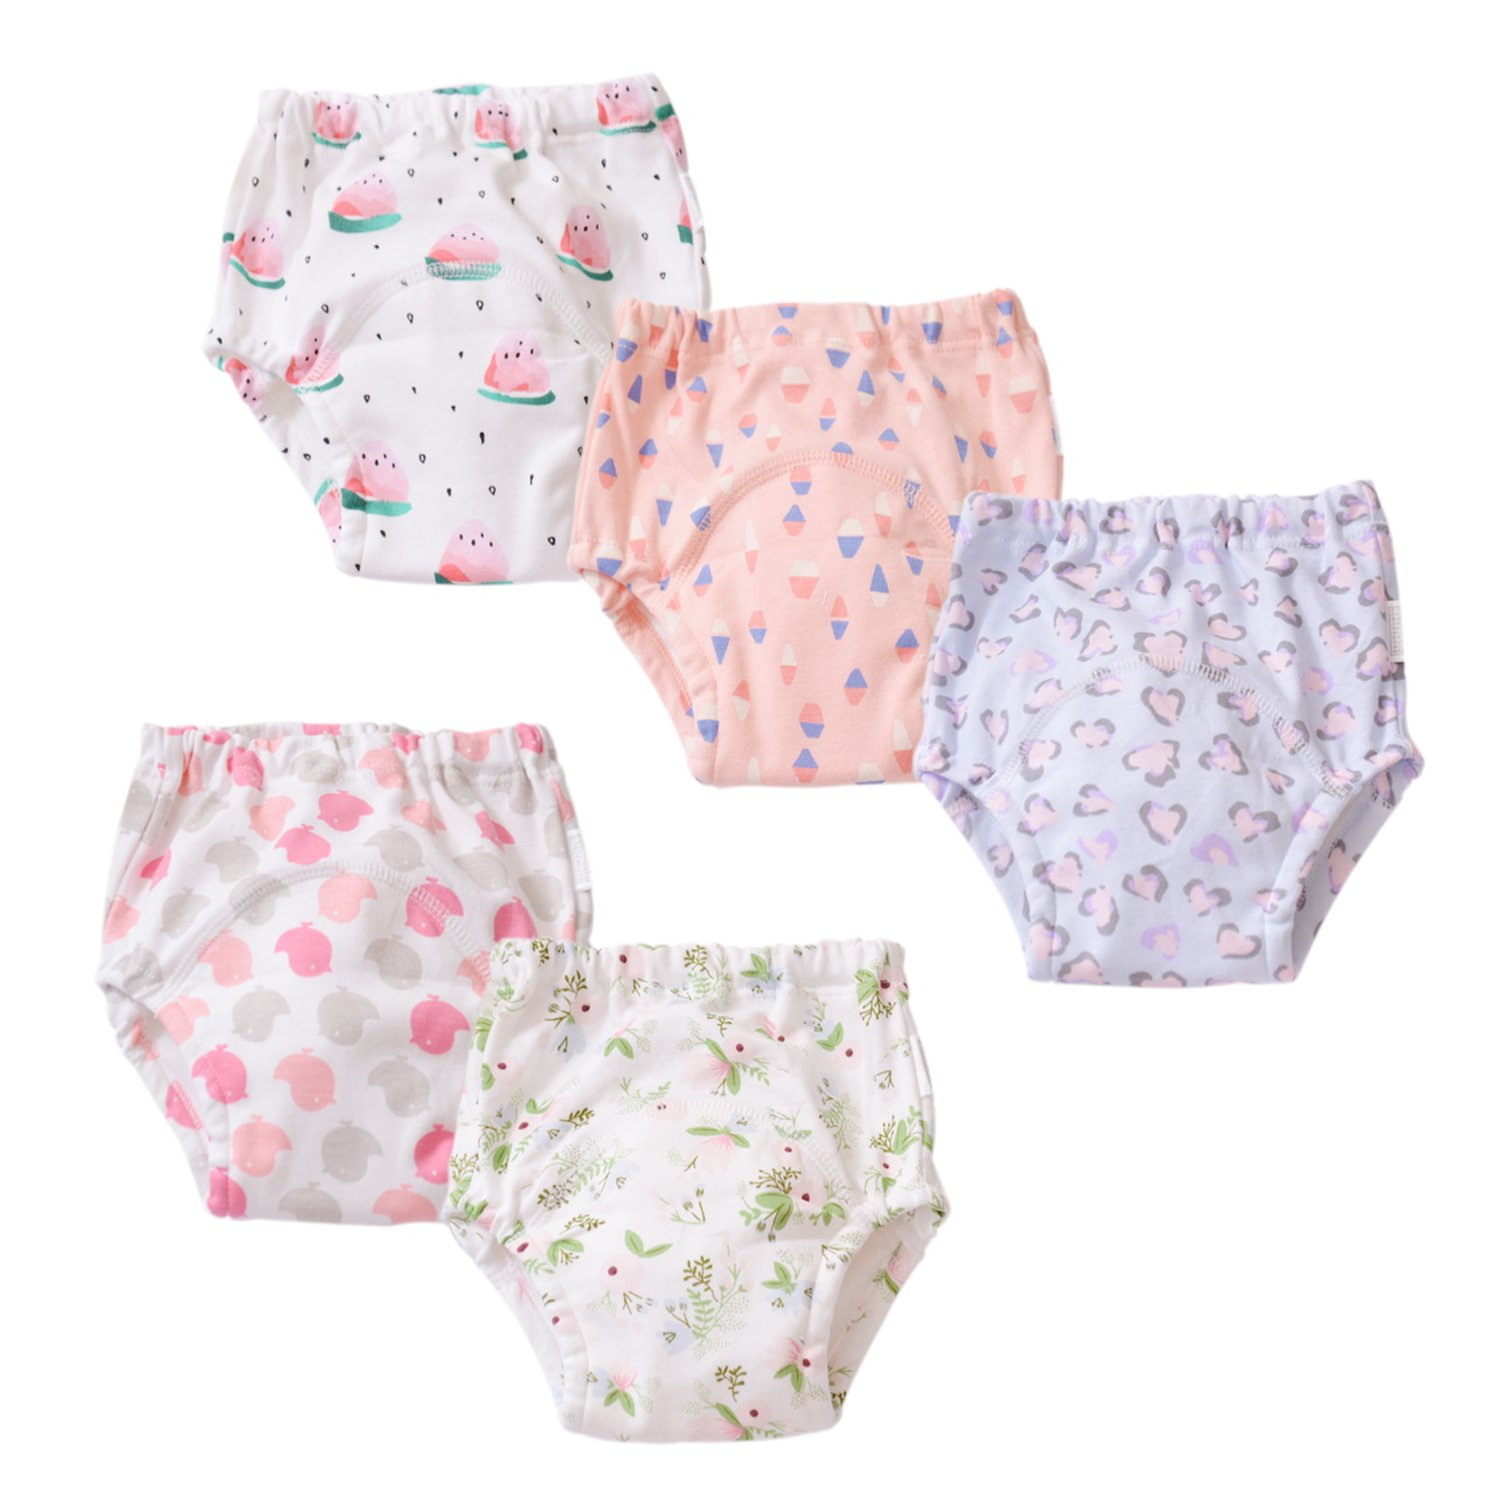 Coodebear Baby Girls' Boys' Cloth Nappy Underwear Breathable Diaper Washable Cotton Training Pants